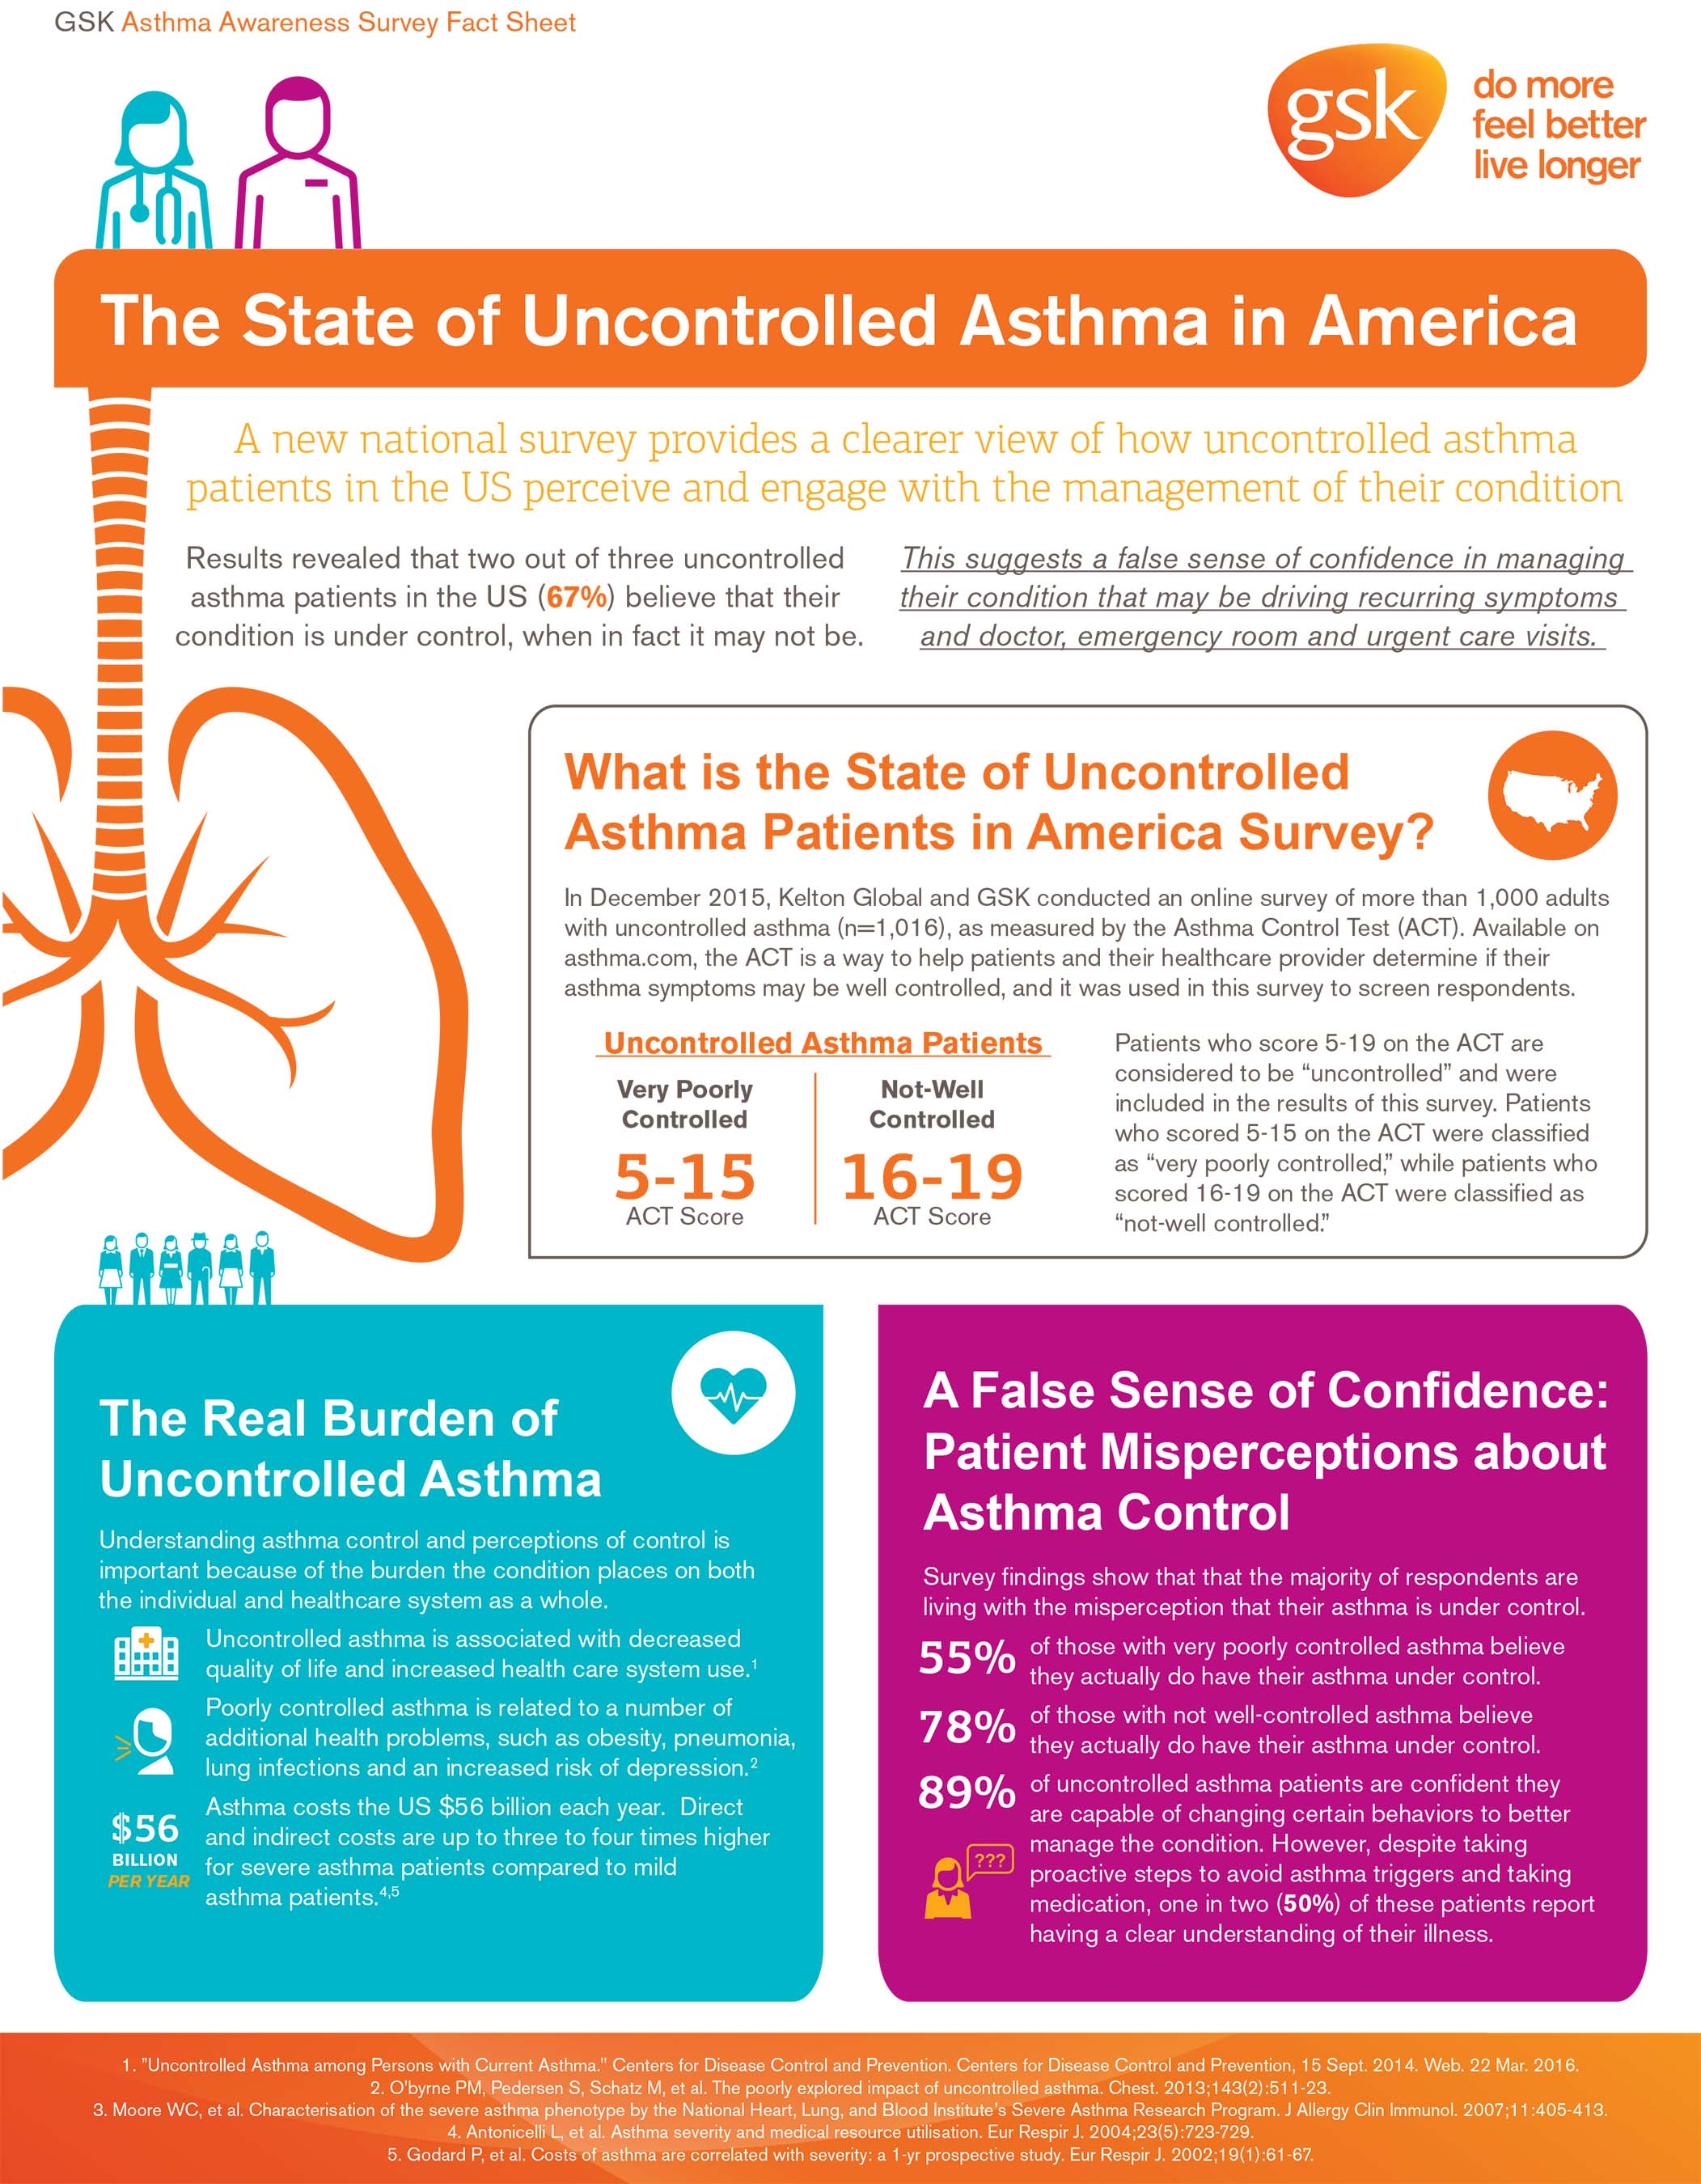 National survey of uncontrolled asthma patients finds majority mistakenly believe their asthma is under control